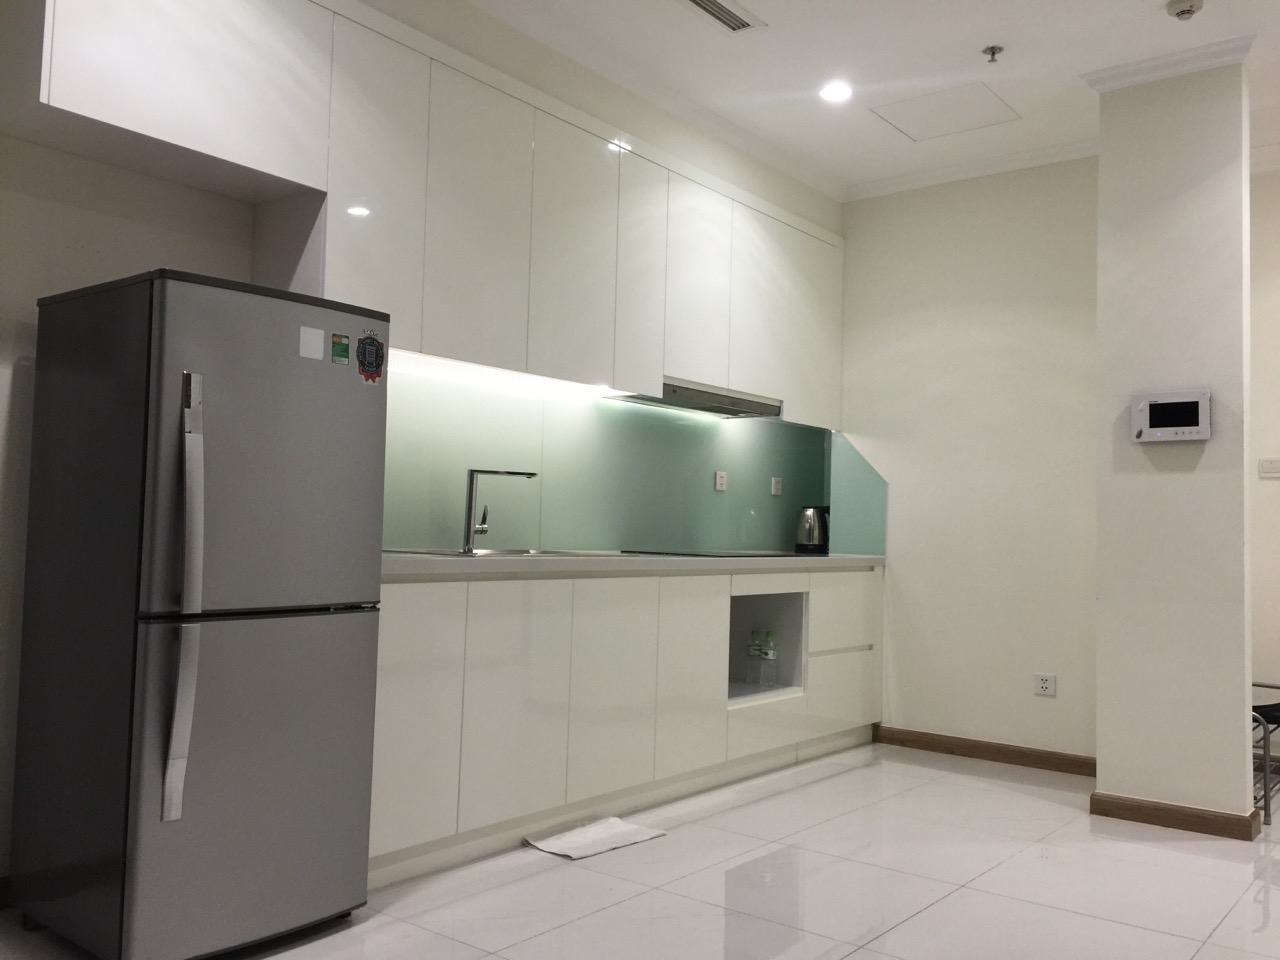 vinhomes central park apartment for rent in binh thanh district hcmc BT105L3877 (1)